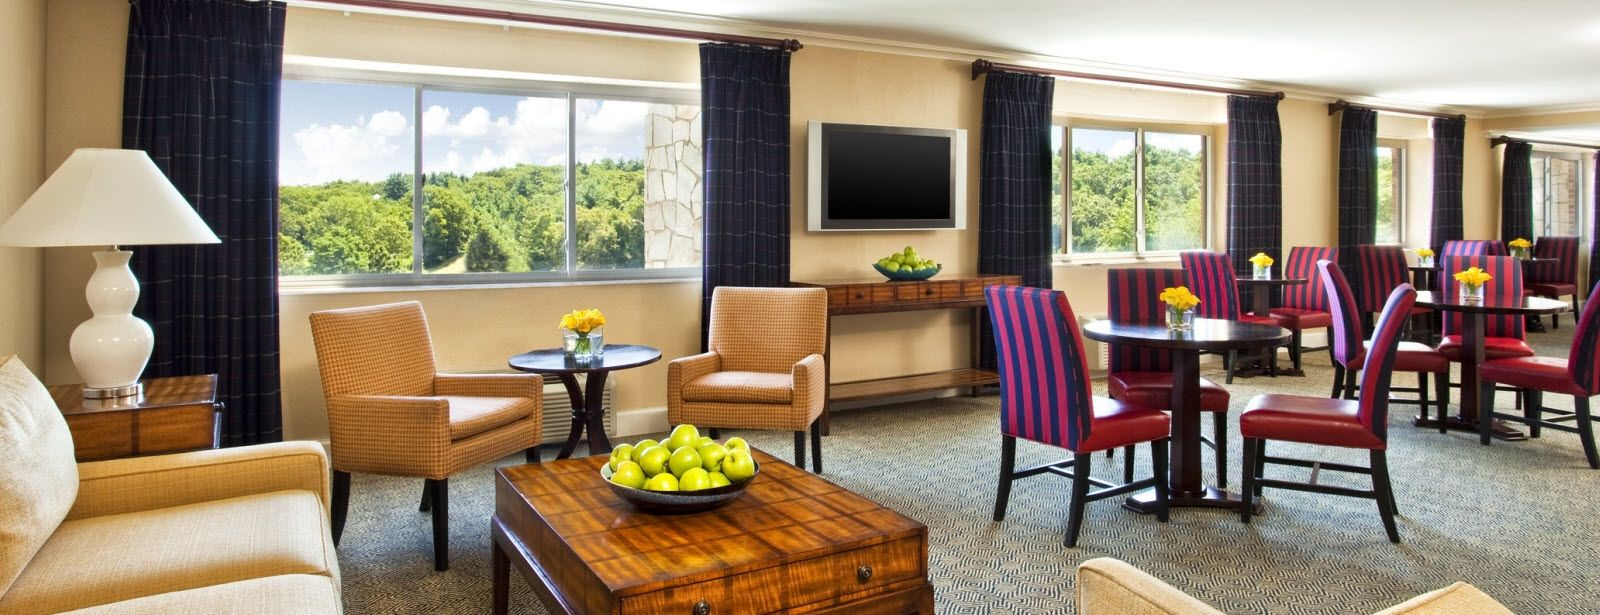 Sheraton Framingham Hotel & Conference Club Guest Room